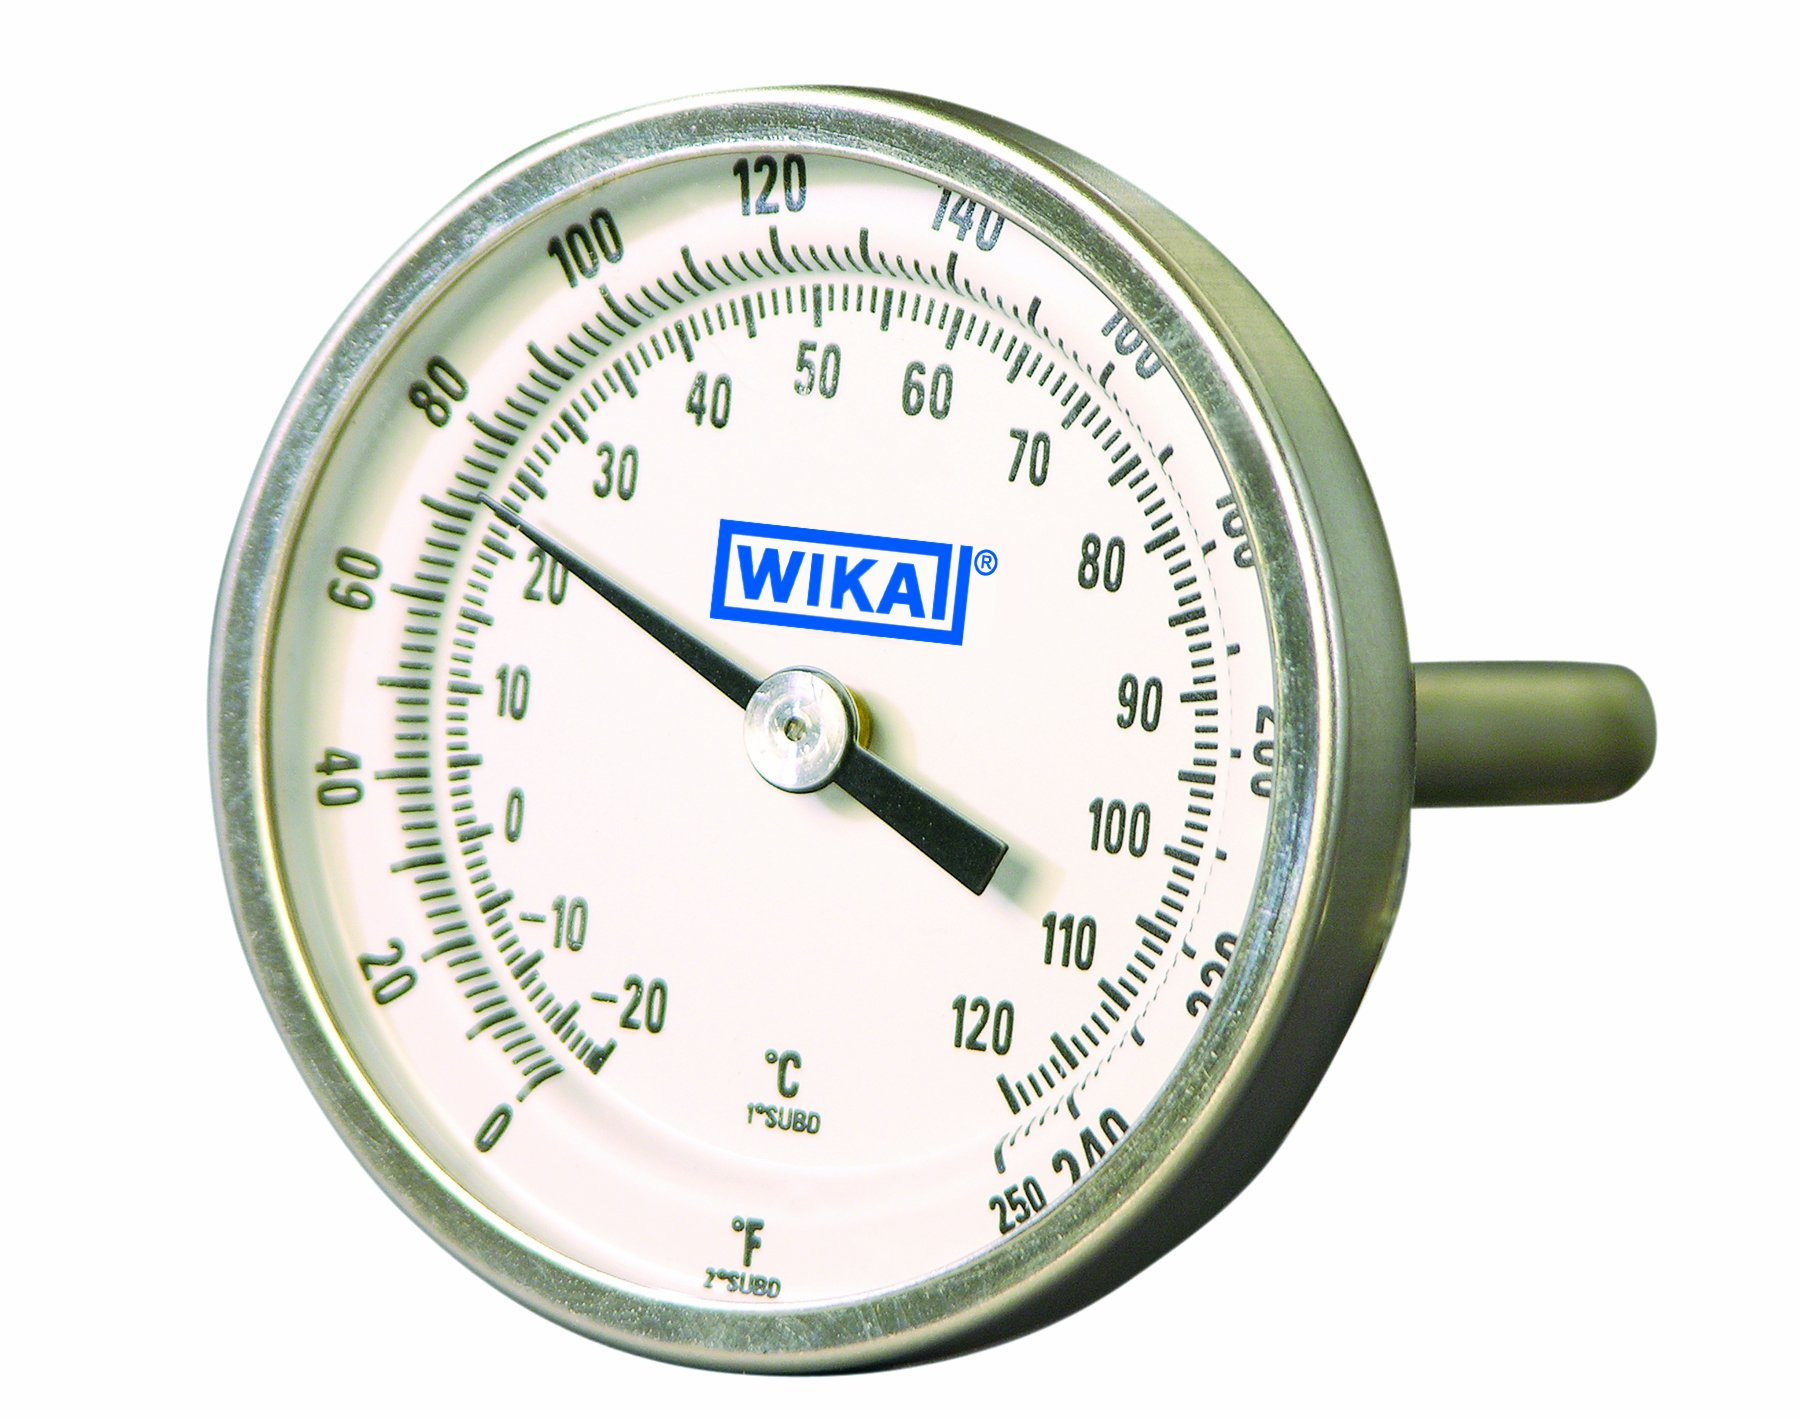 WIKA TI.20 Stainless Steel 304 OEM Industrial Bi-Metal Thermometer, 2'' Dial, 0/250 Degrees F/C, 2-1/2'' Stem, 1/4'' NPT Connection